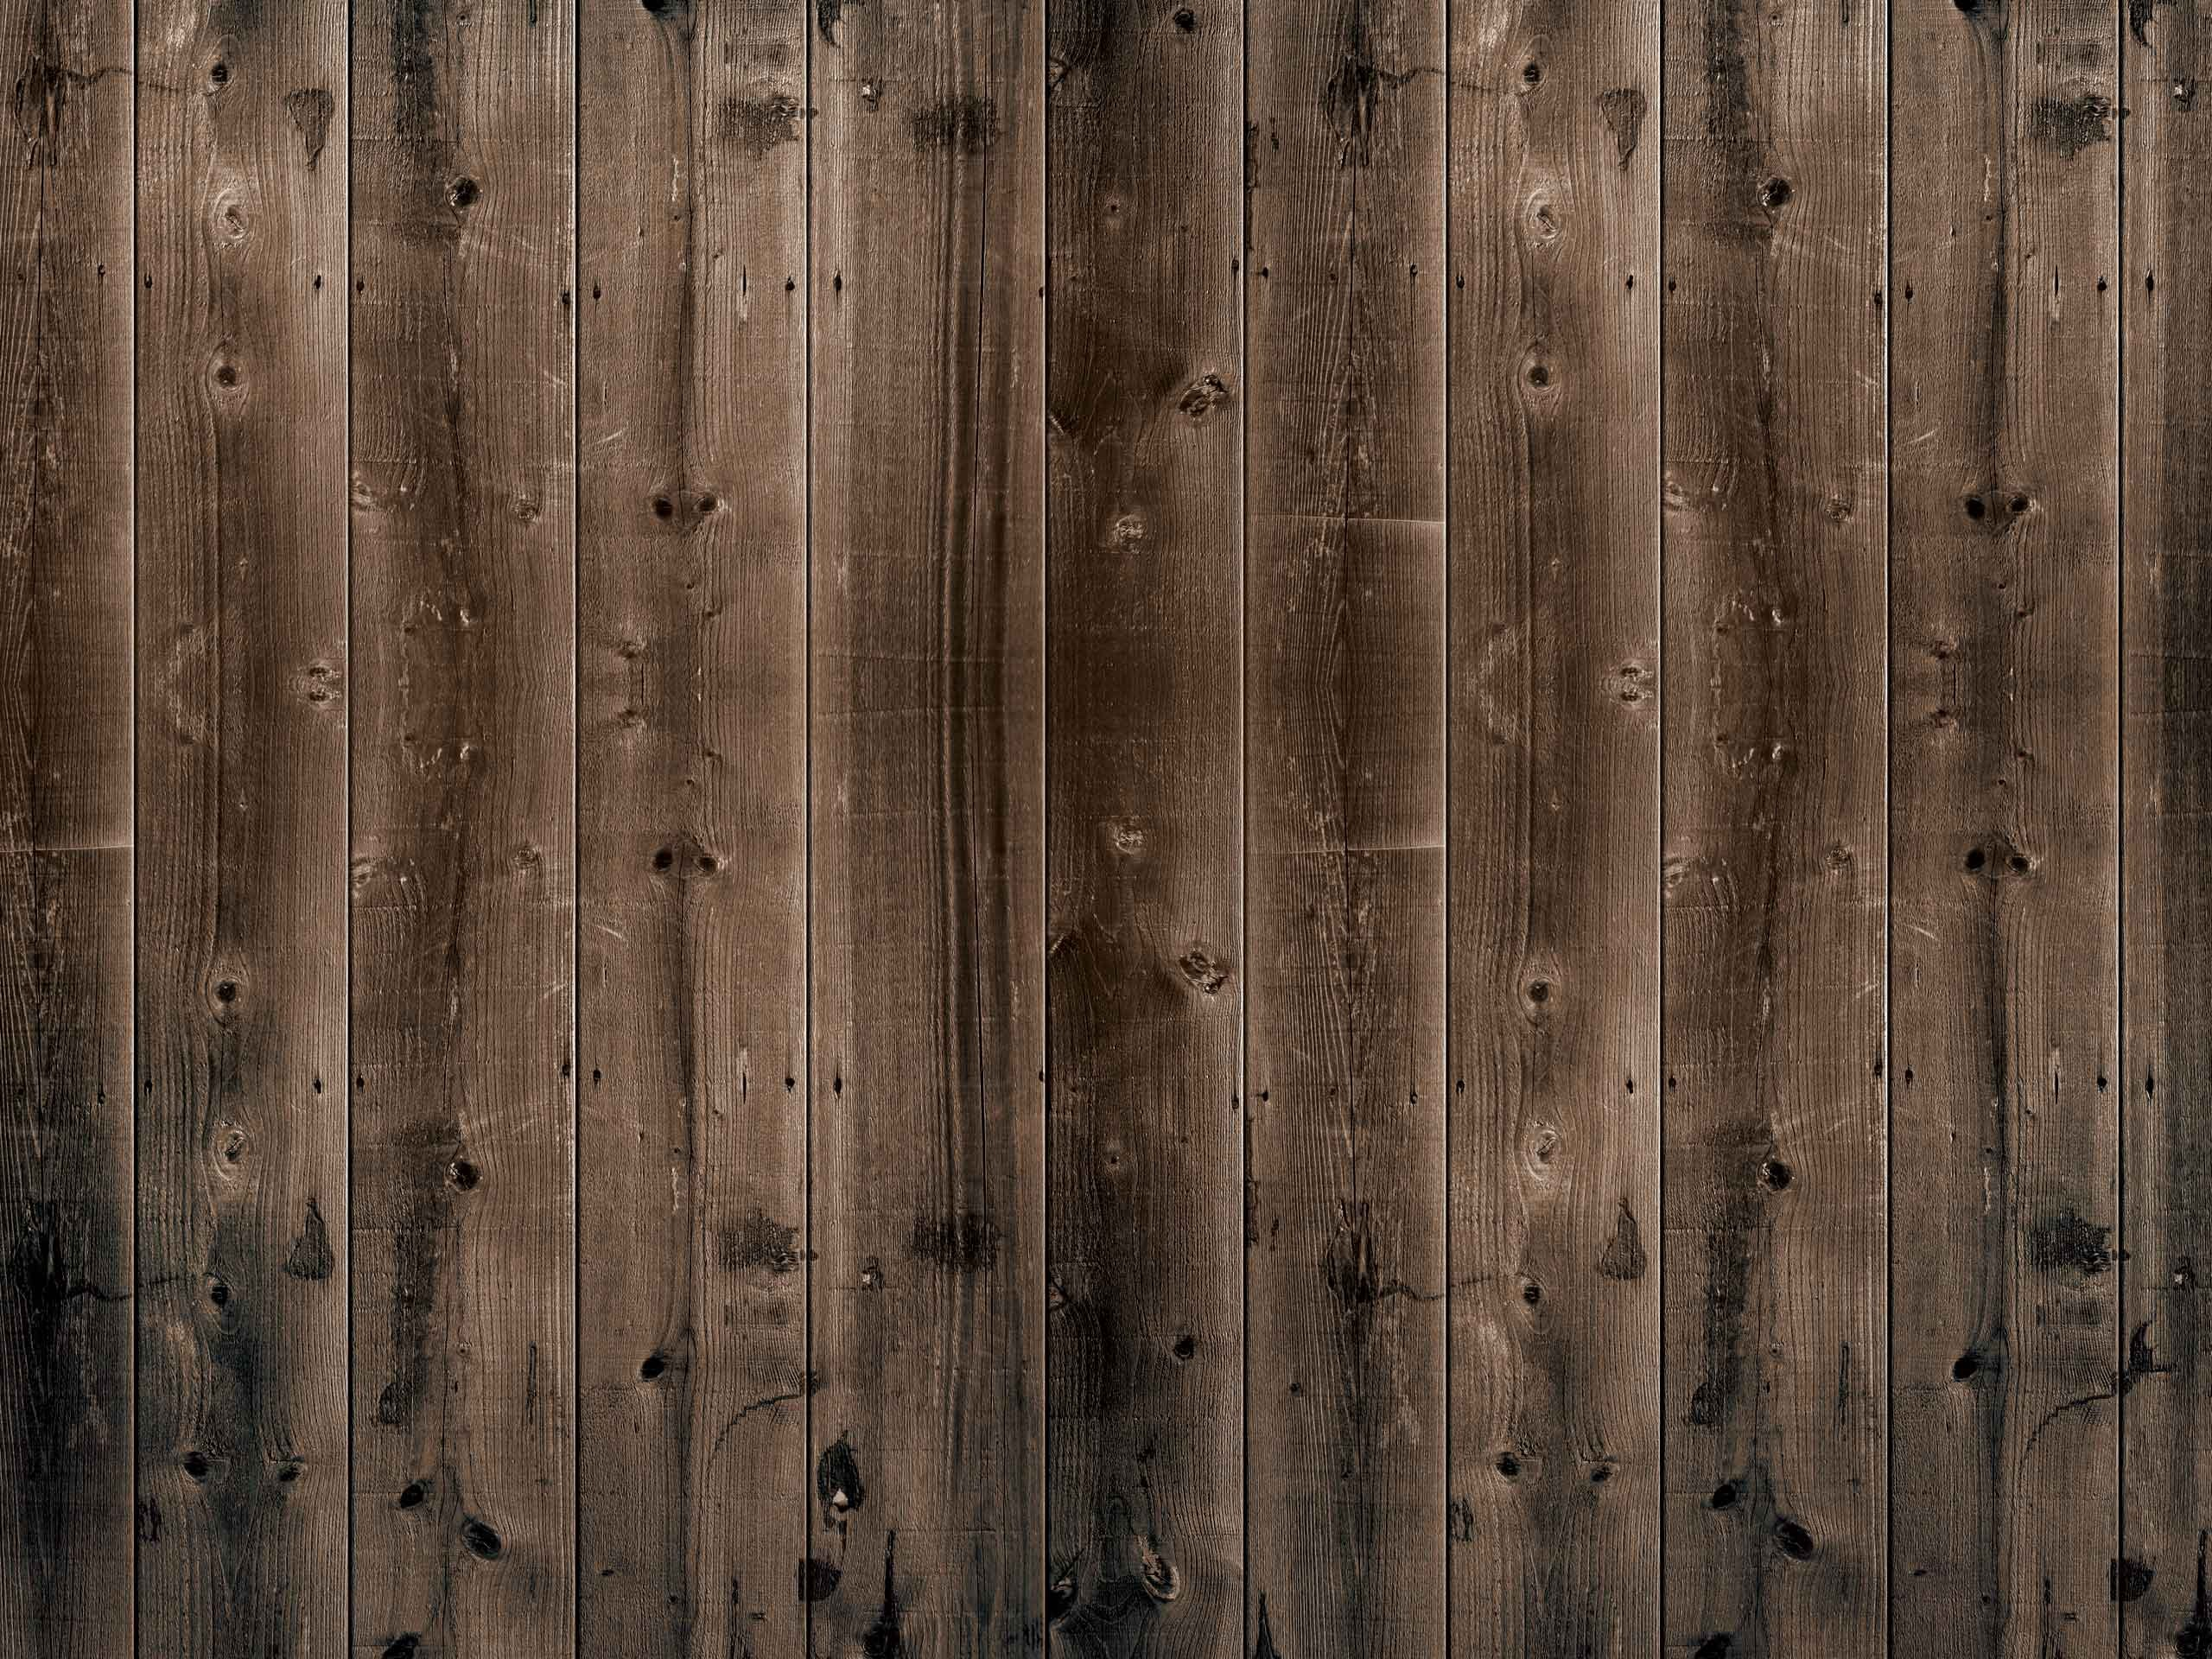 Vintage rustic wood background with lace ·① download free